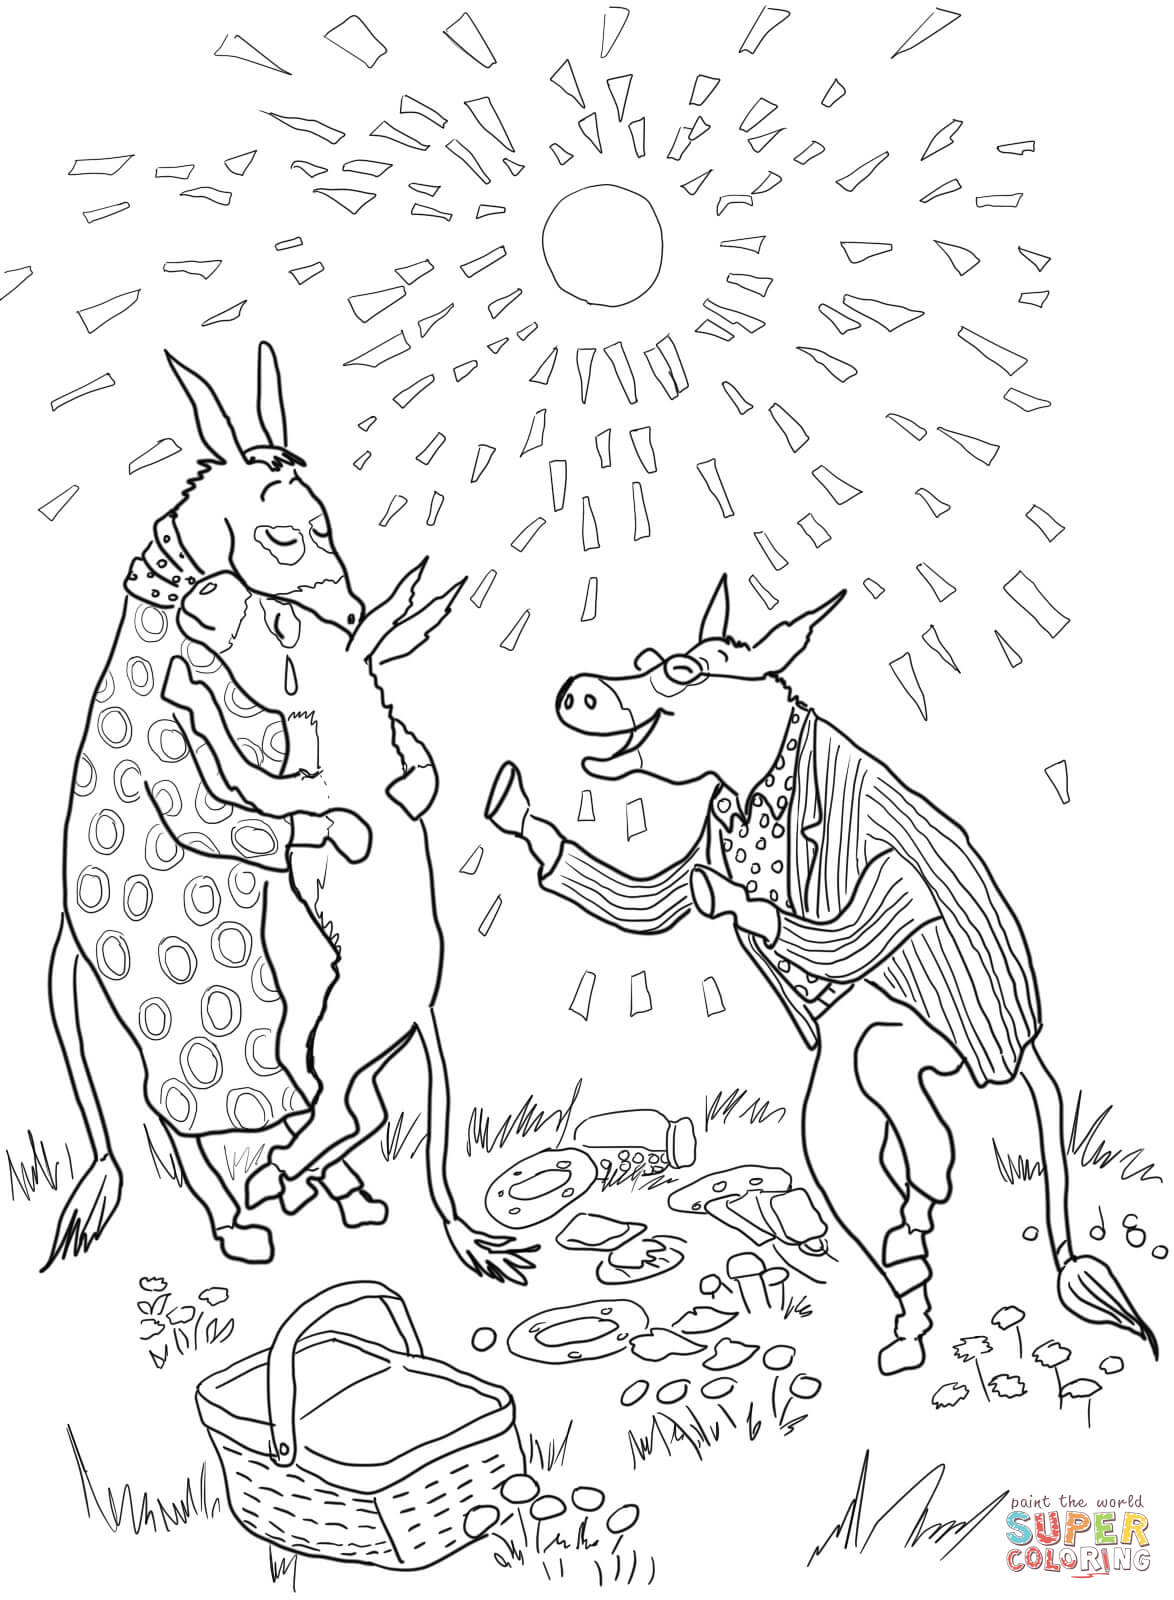 Sylvester And The Magic Pebble Coloring Page